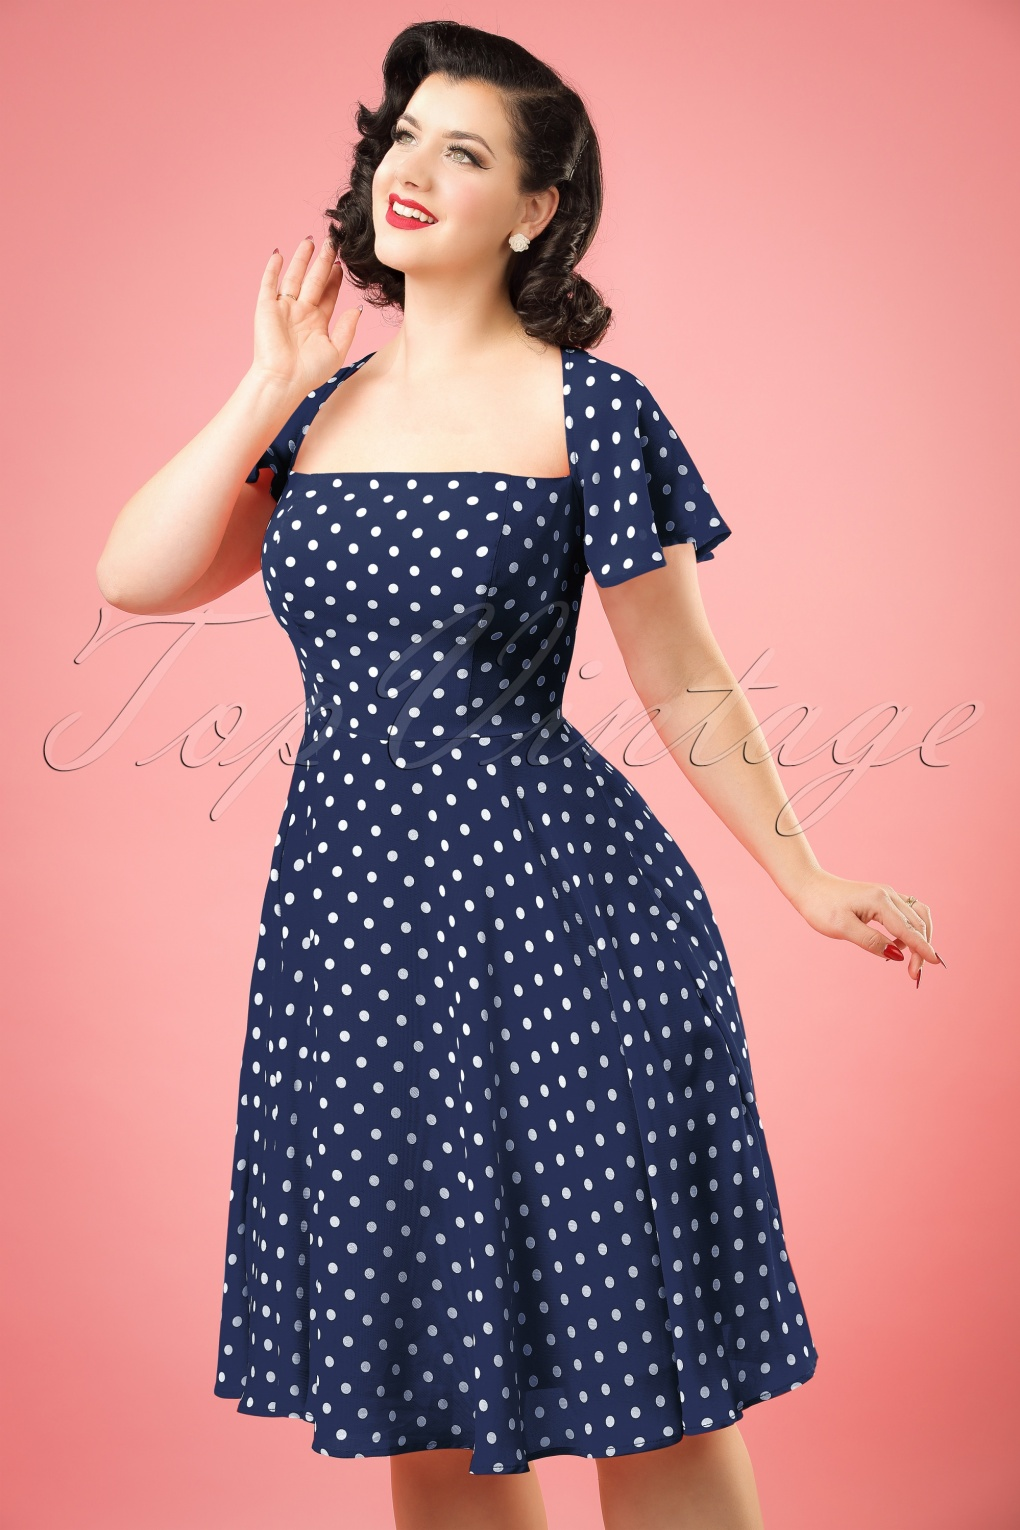 Vintage Inspired Clothing Stores 50s Juliet Polka Dot Swing Dress in Navy £61.42 AT vintagedancer.com